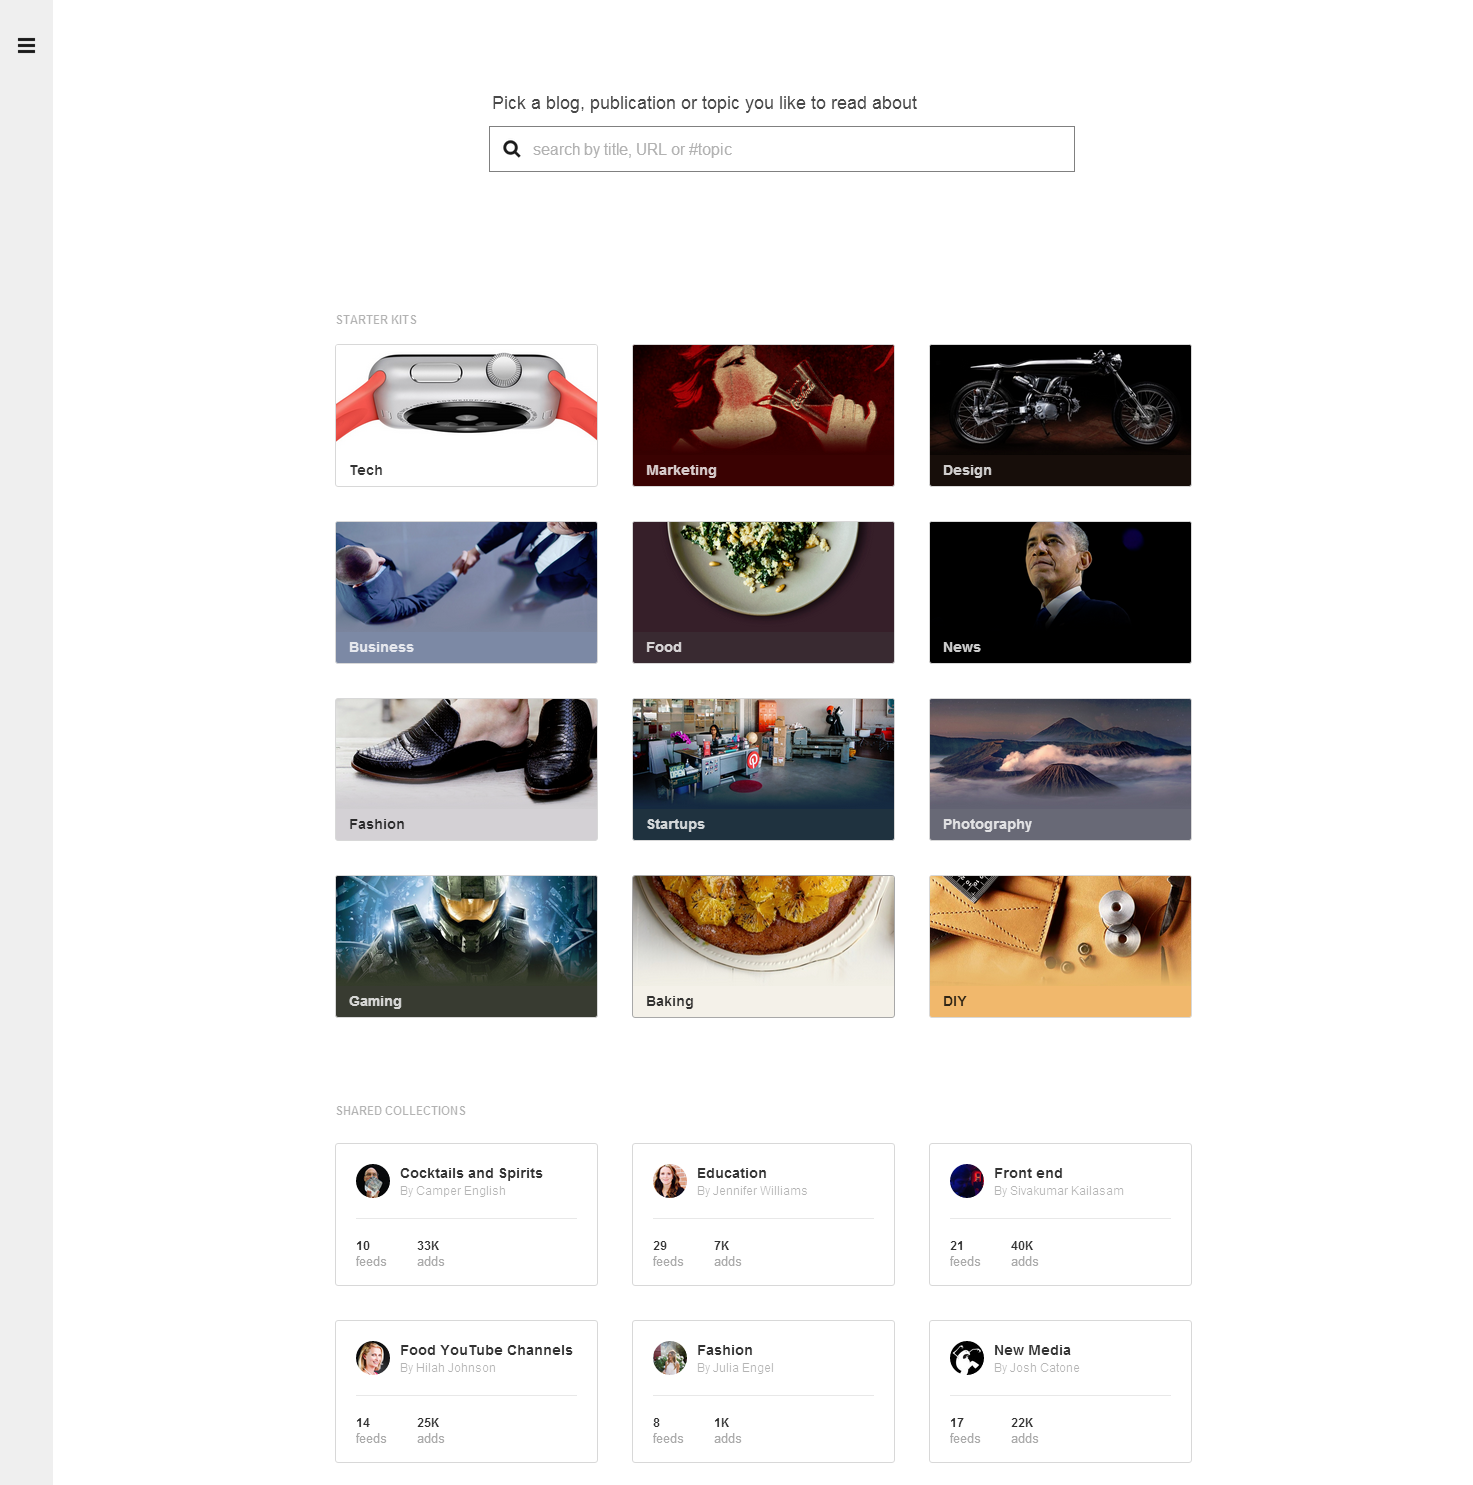 feedly-explore